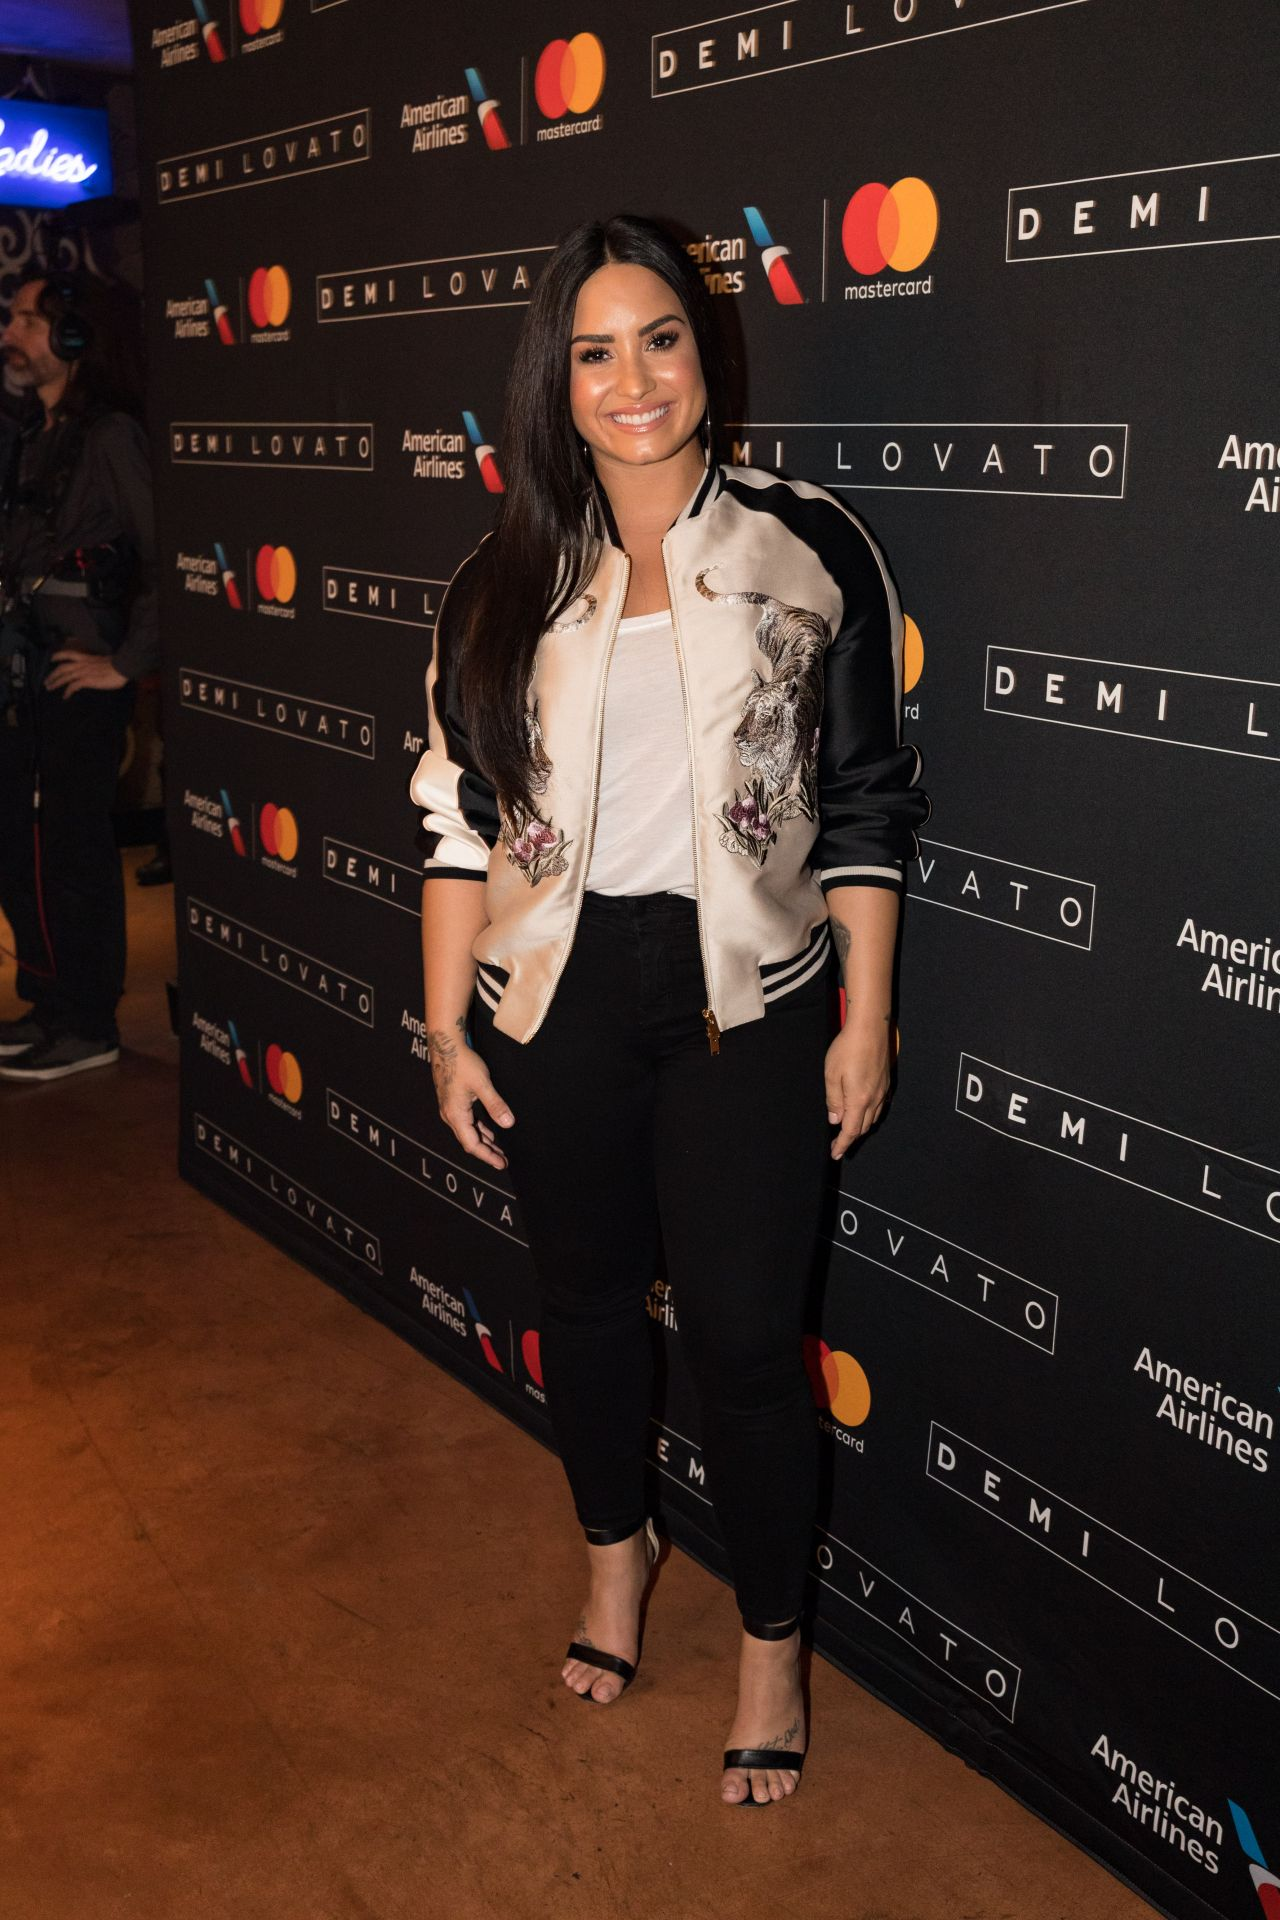 Demi Lovato Performs At House Of Blues In Dallas